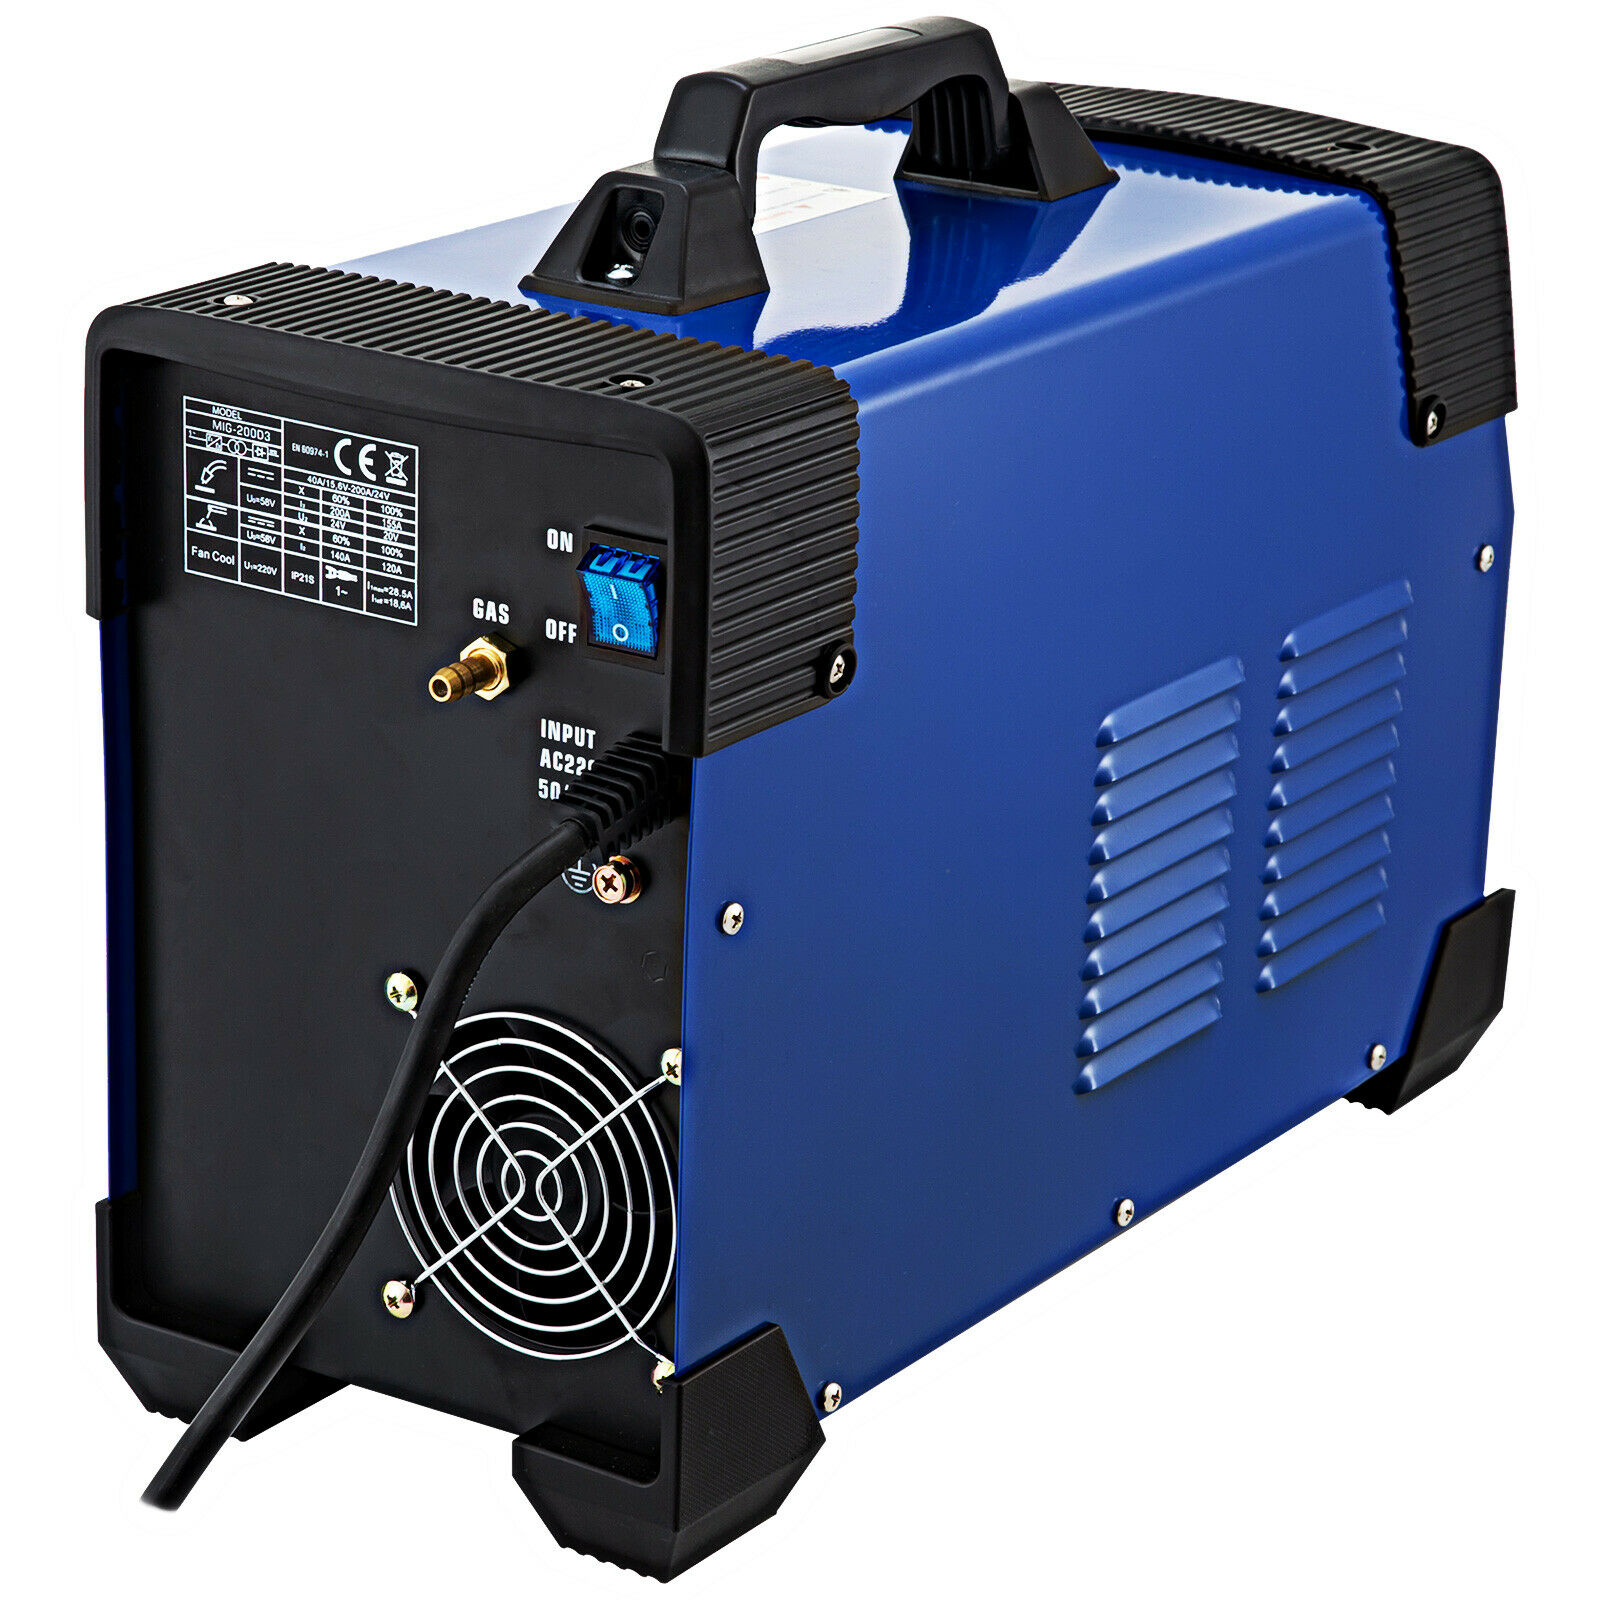 5 In 1 MIG / MAG / TIG / FLUX / MMA Inverter Welder 200Amp Combo Welding Machine With Free Shipping To EU